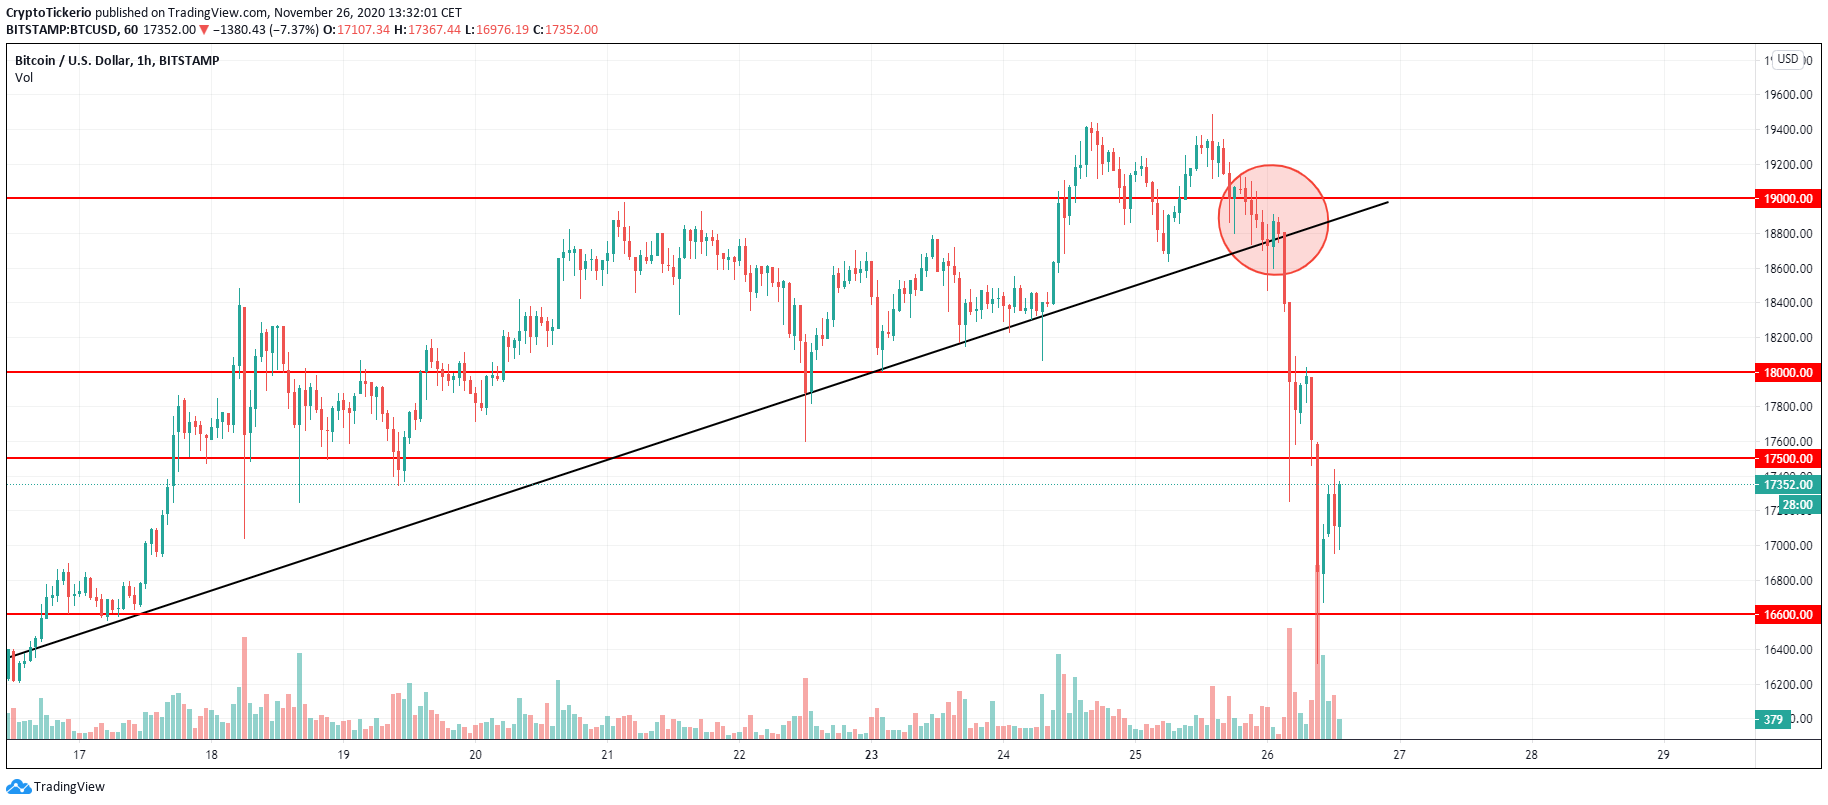 BTC/USD 1-Hour chart showing important support levels